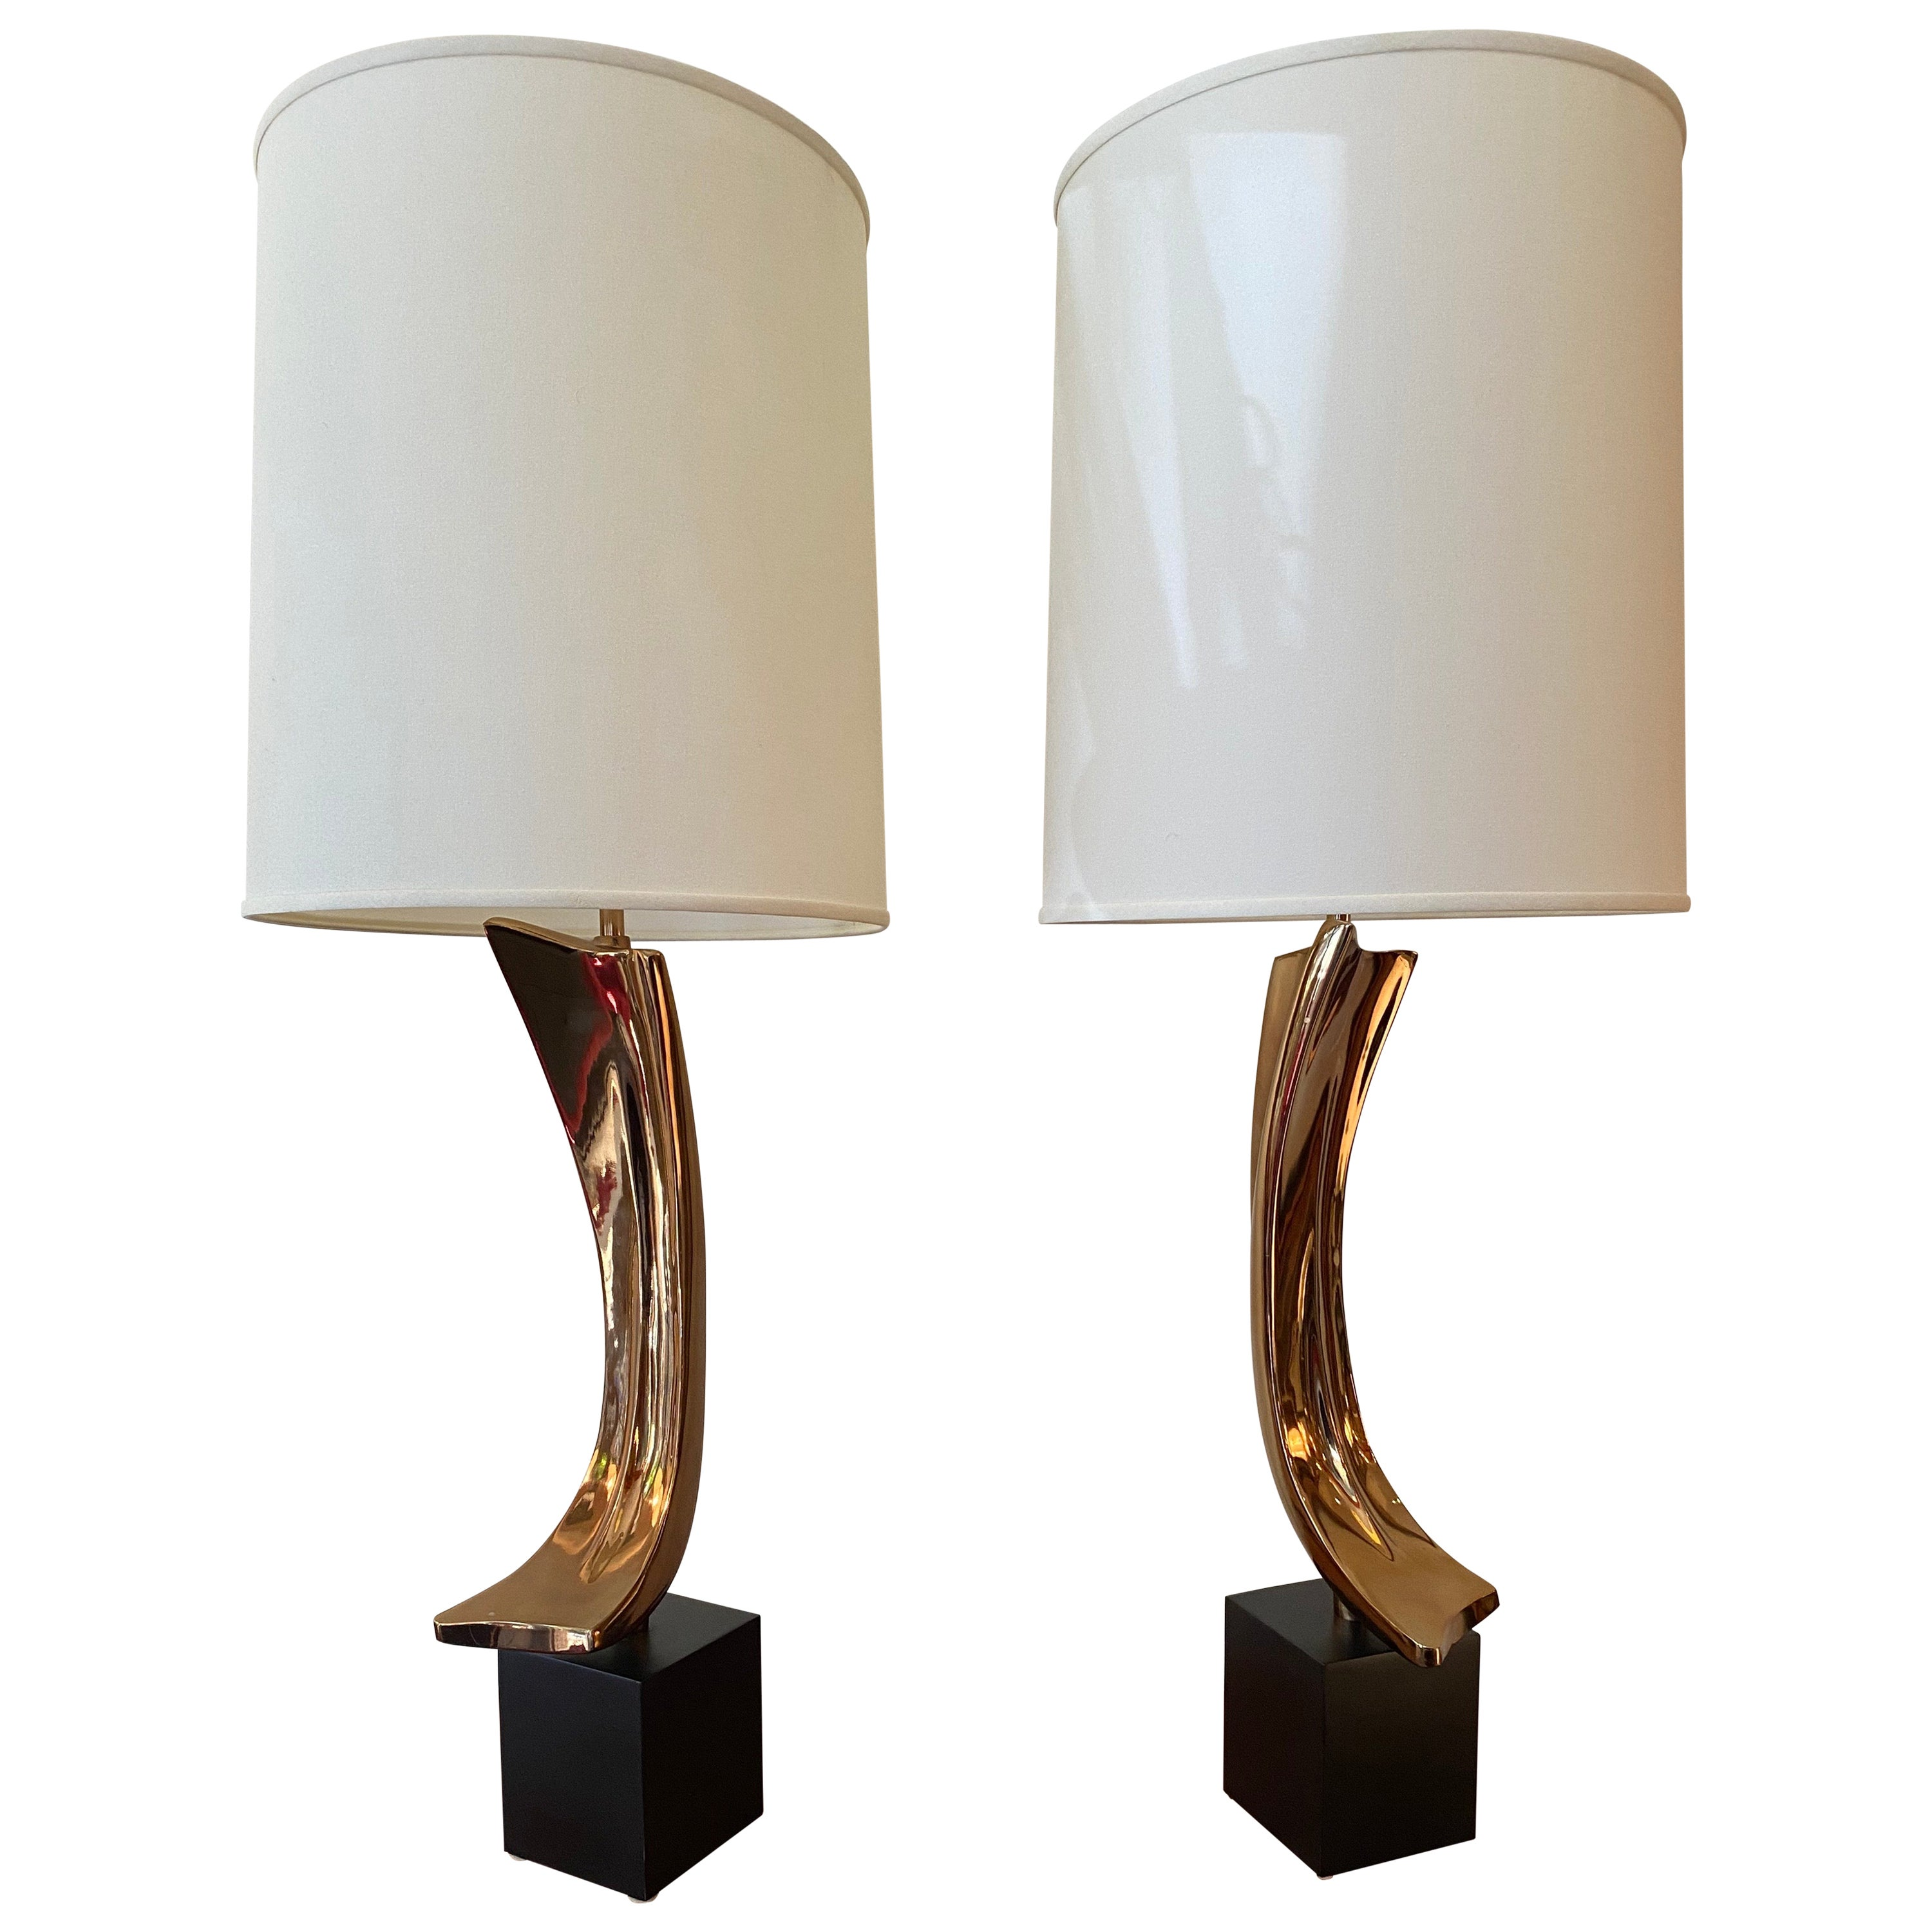 Laurel Pair of Sculptural Table Lamps